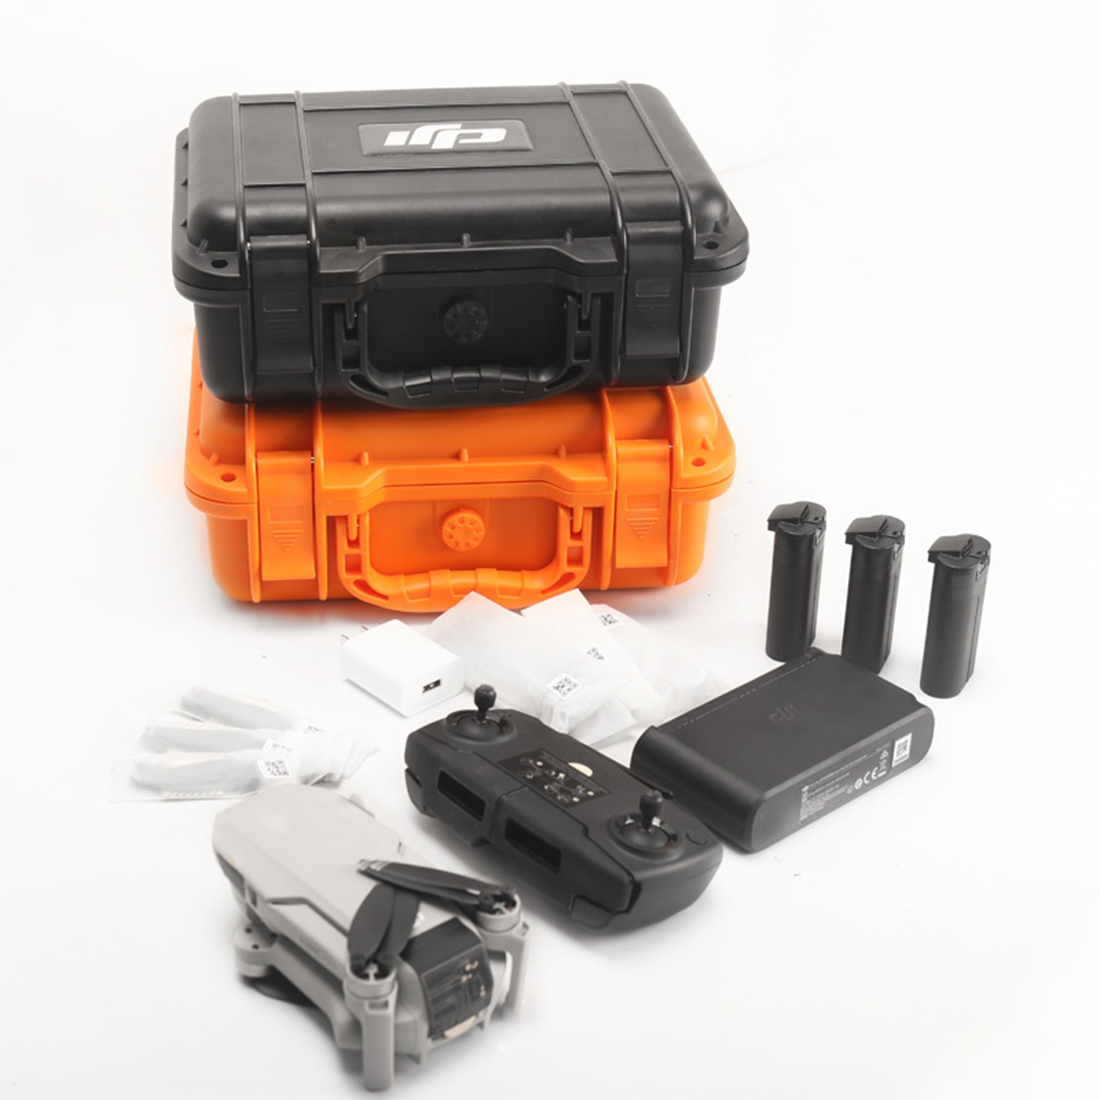 Waterproof Safety Box Explosion-proof Portable Carrying Case For DJI Mavic Mini Drone - Orange